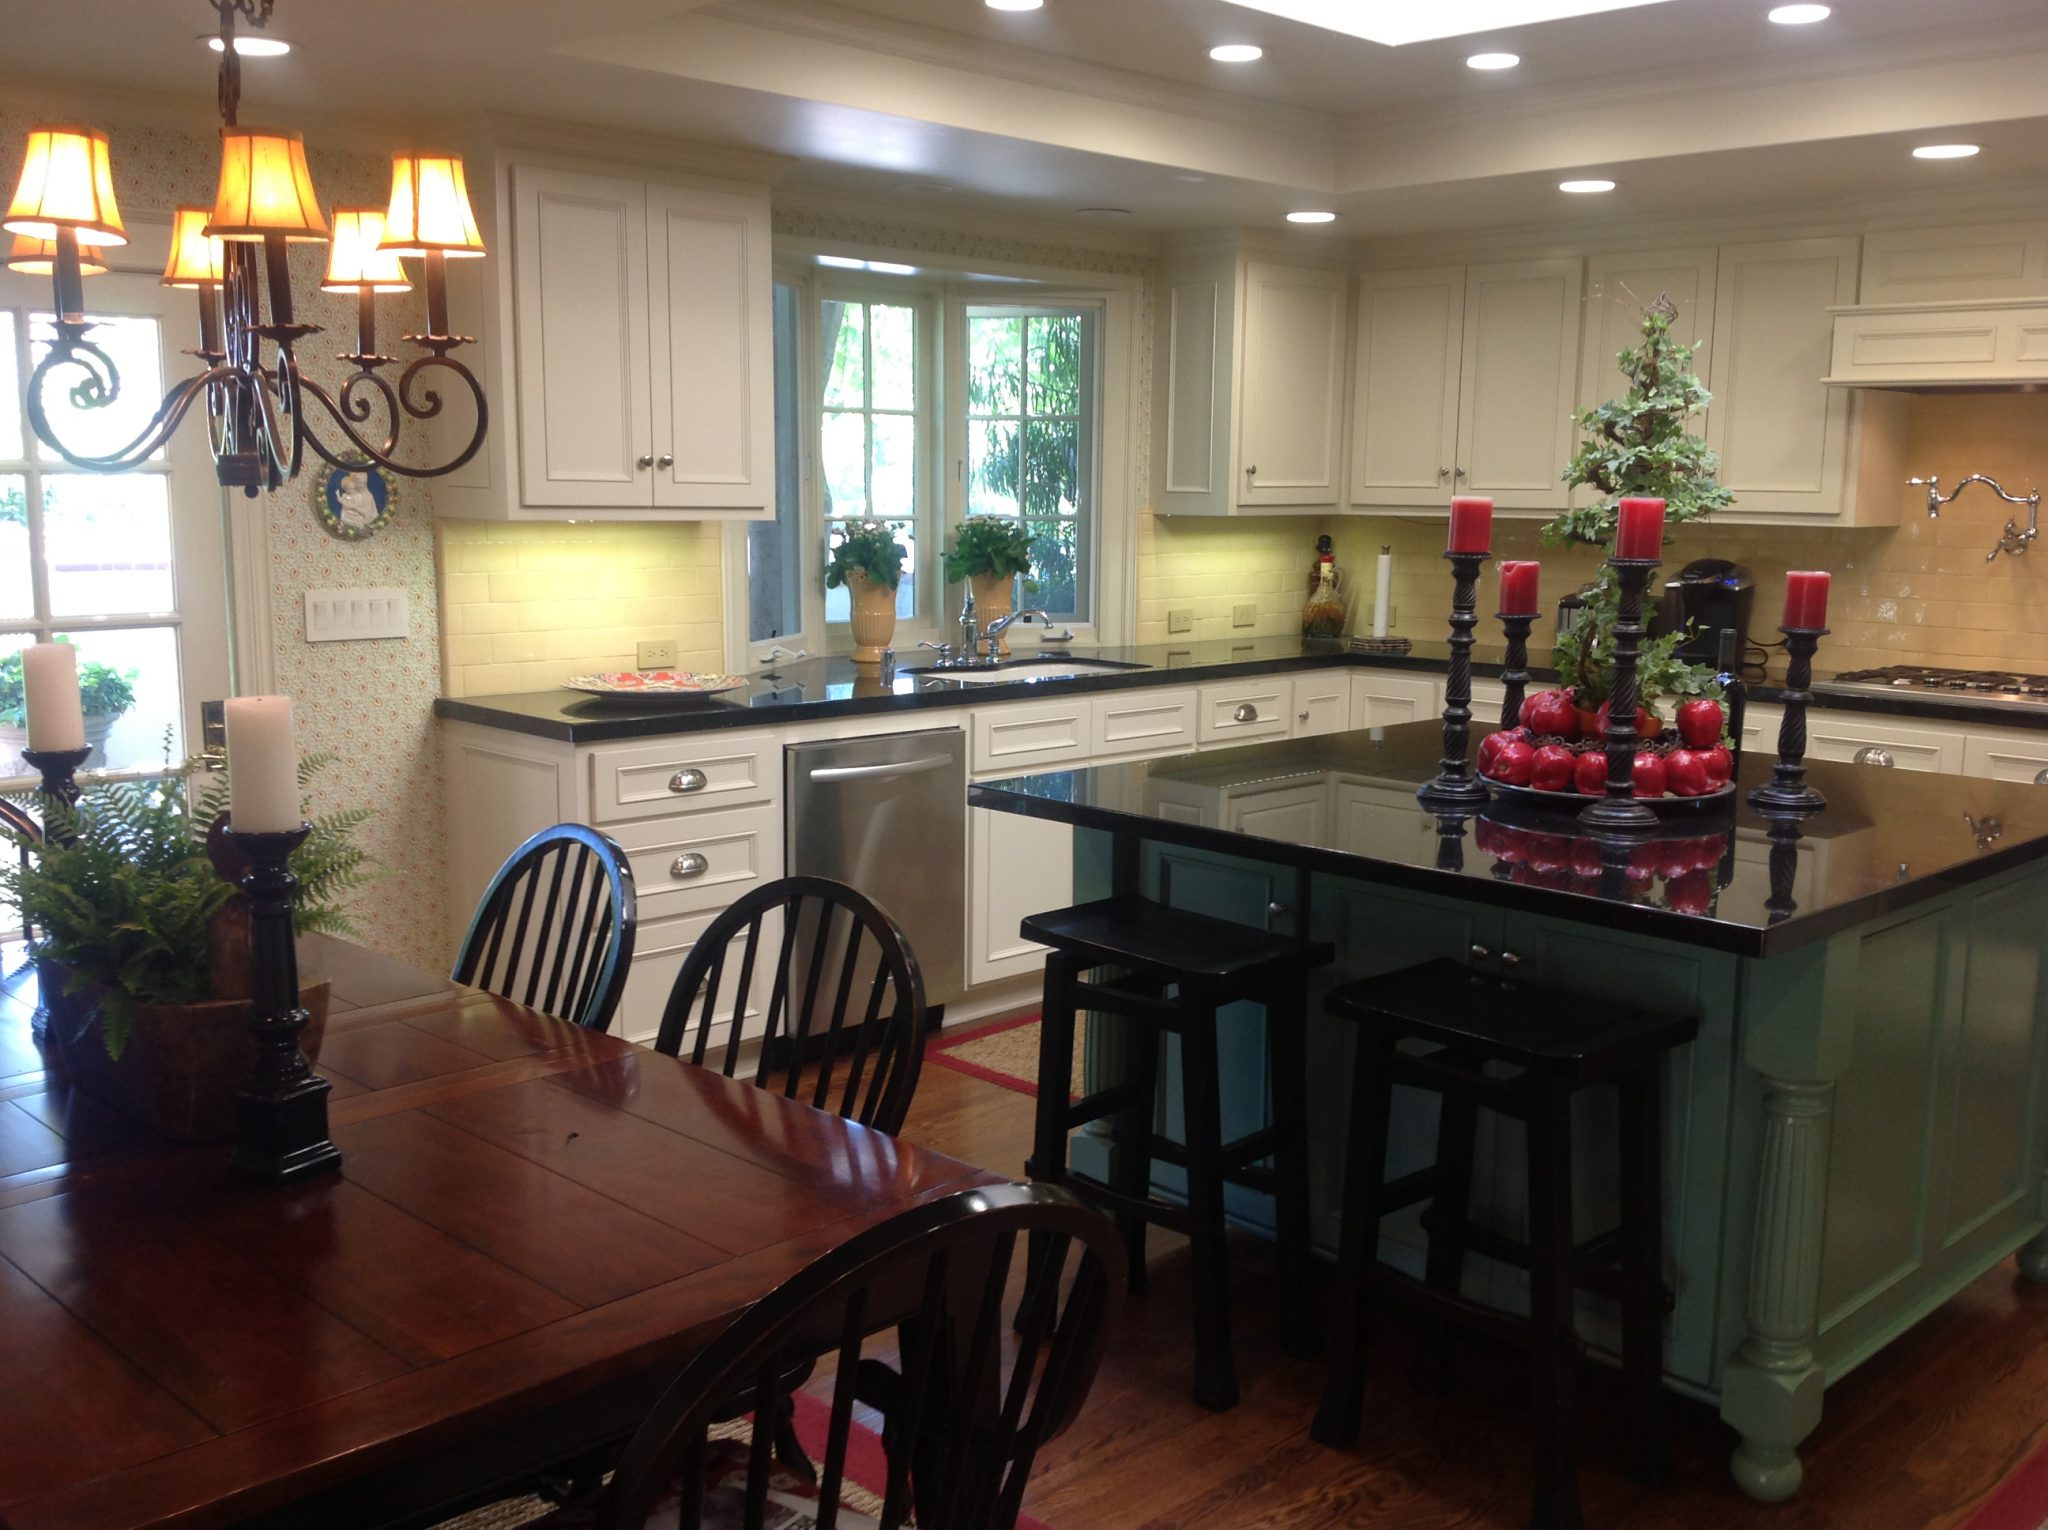 Kitchen Dining Area and Family Room Remodel • Jim LeVeque Remodeling